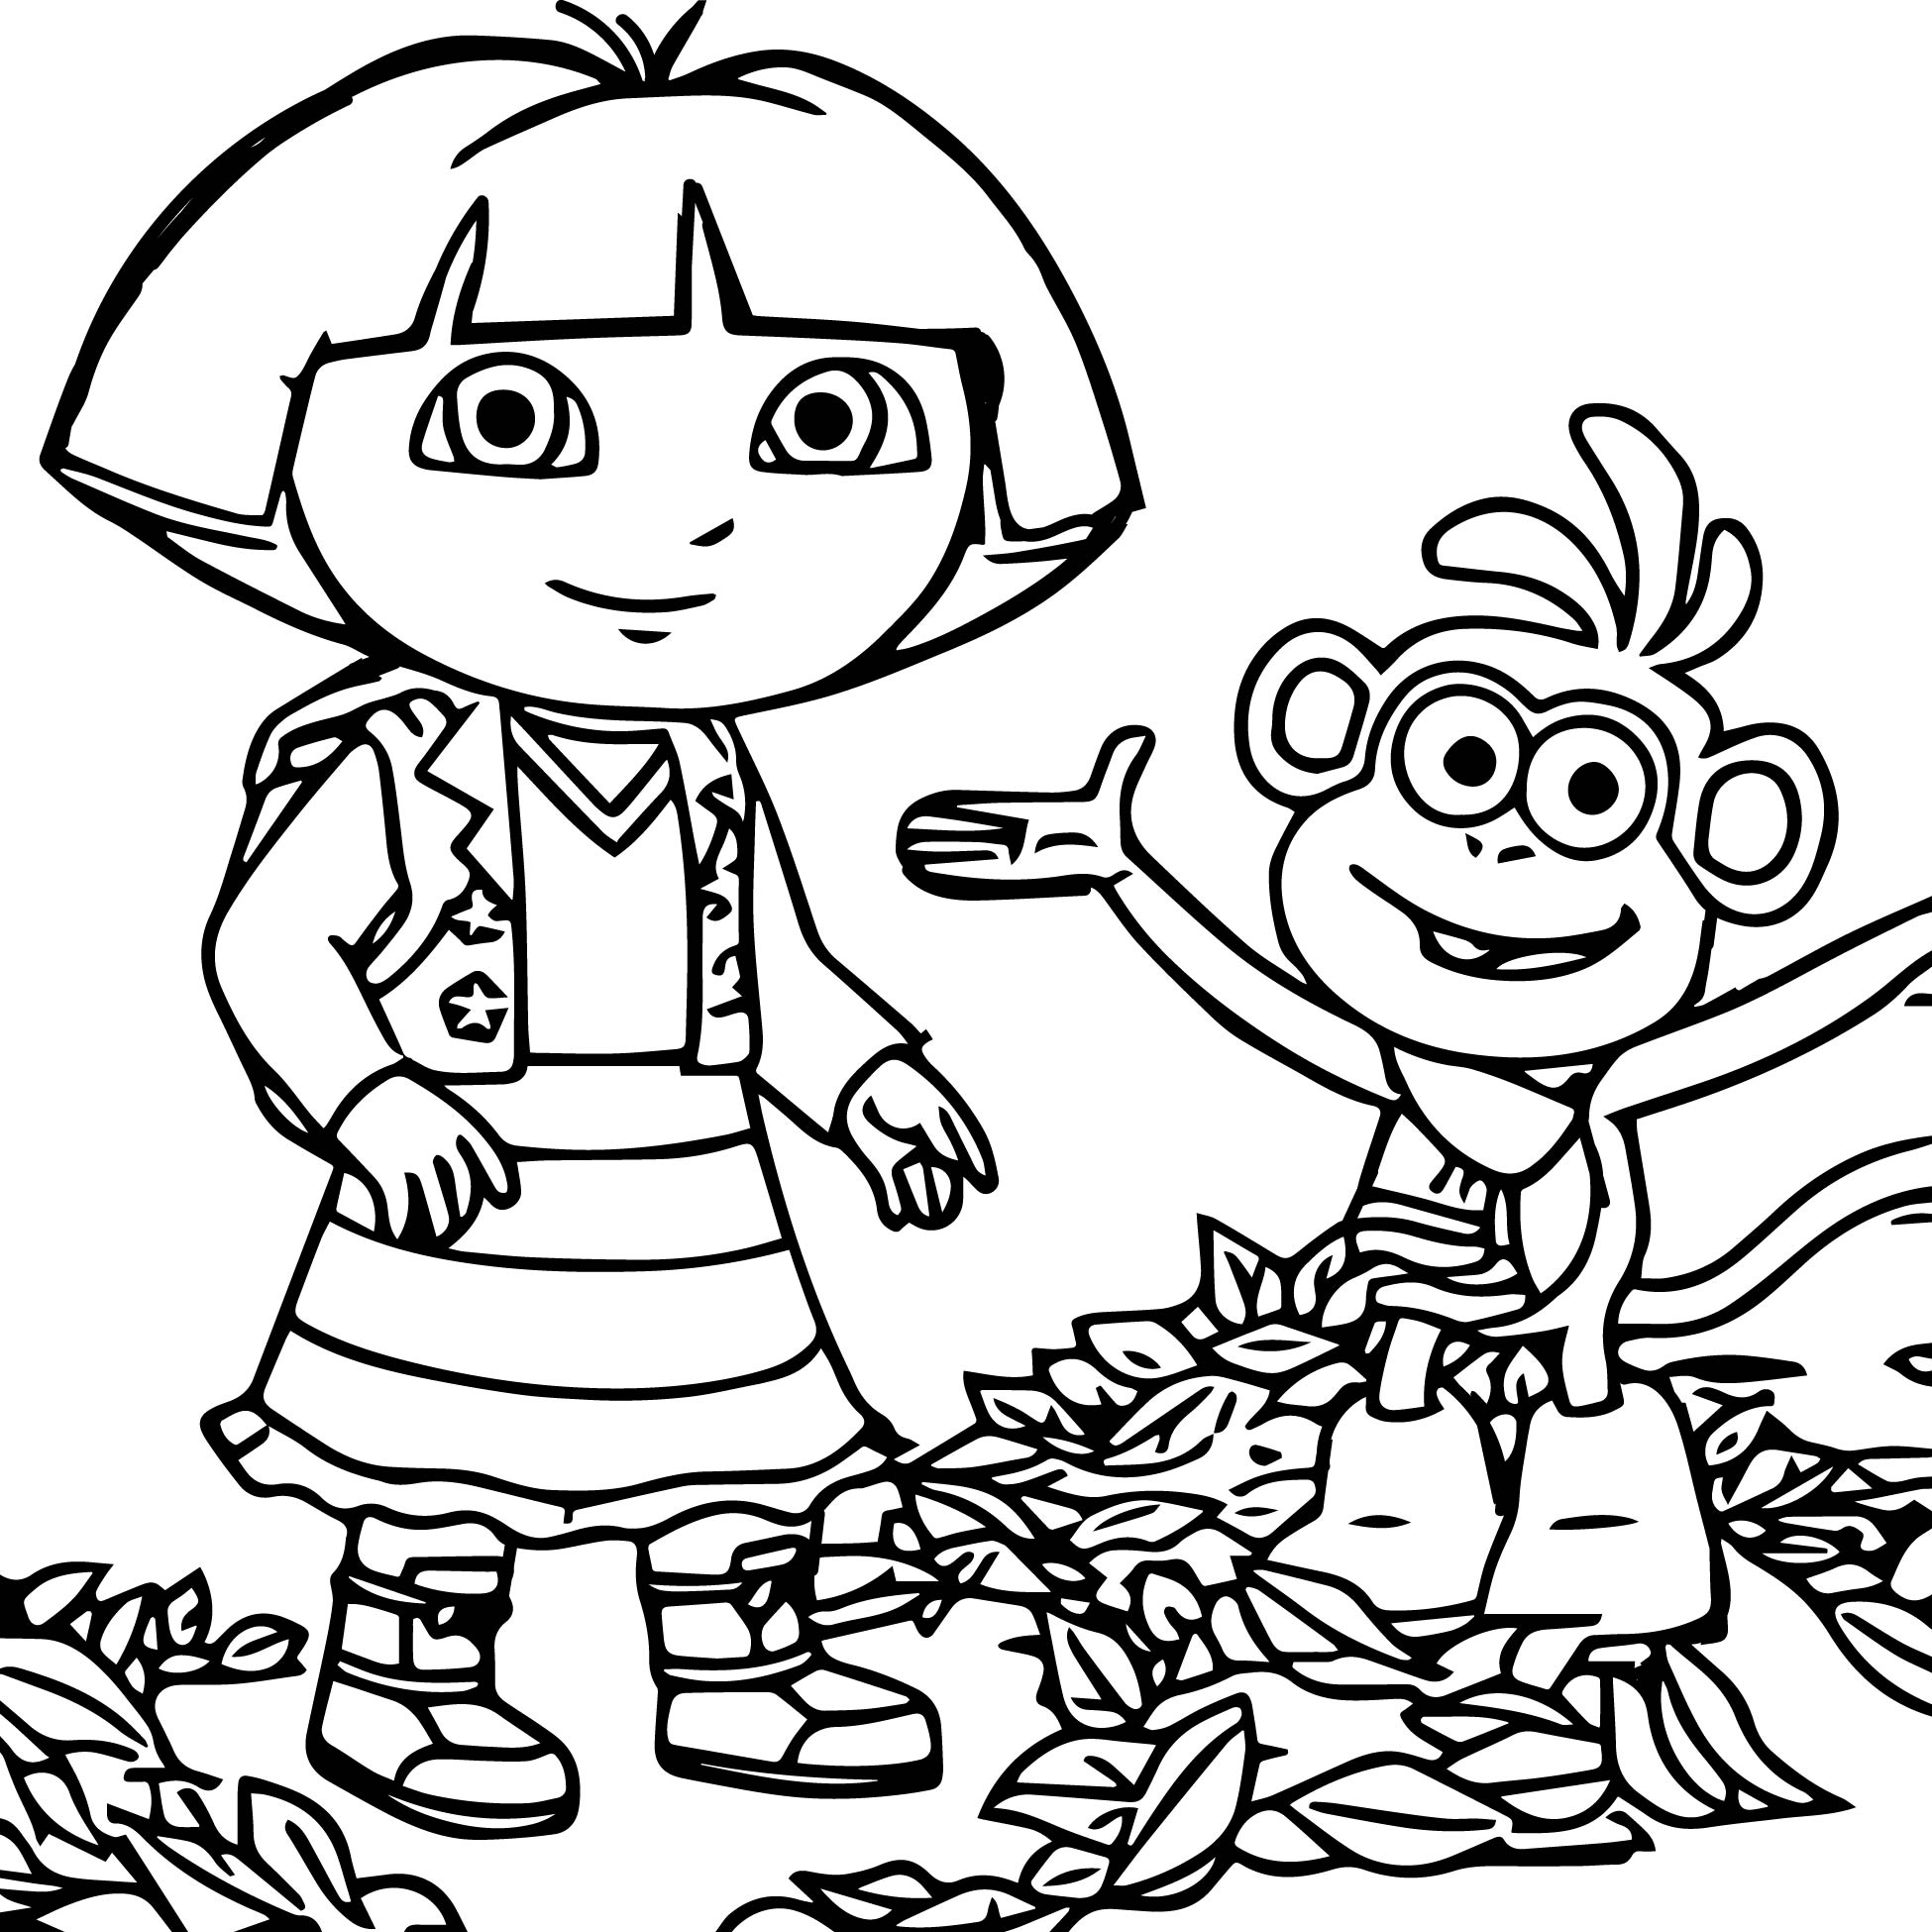 coloring pages dora and friends dora and friends coloring pages to download and print for free pages and friends coloring dora